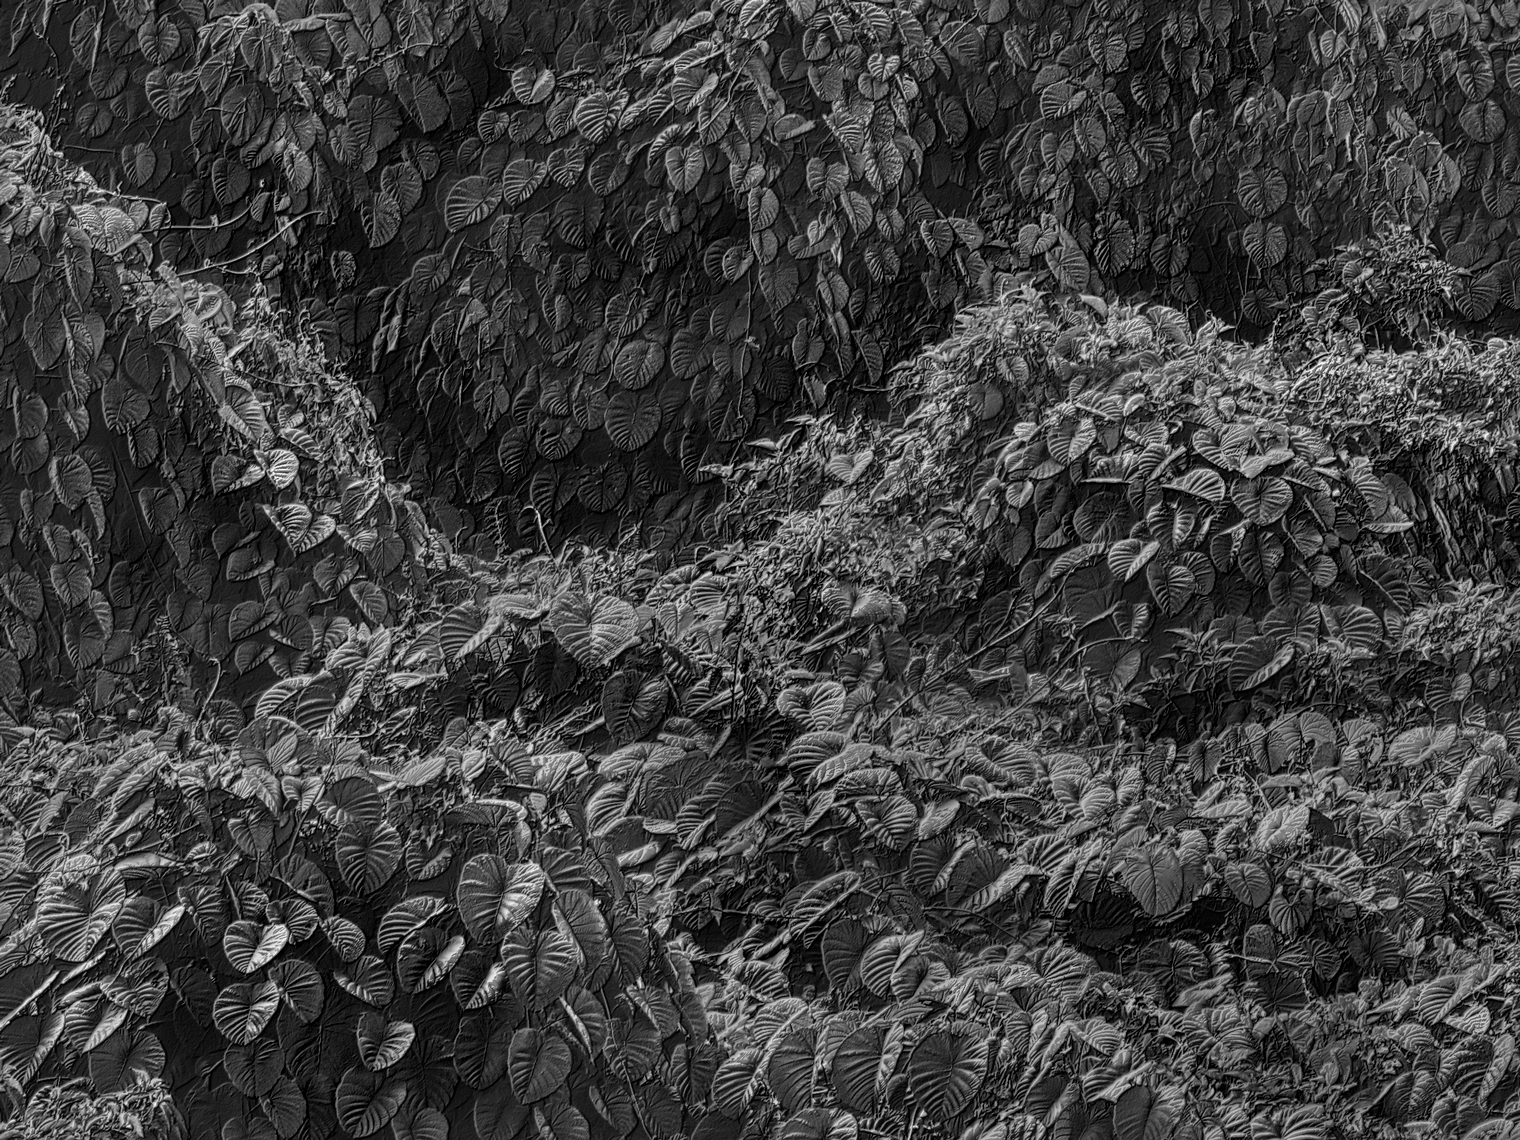 Jon Wyatt Photography - Fault Line II - A tsunami of vegetation - invasive vines in samoa